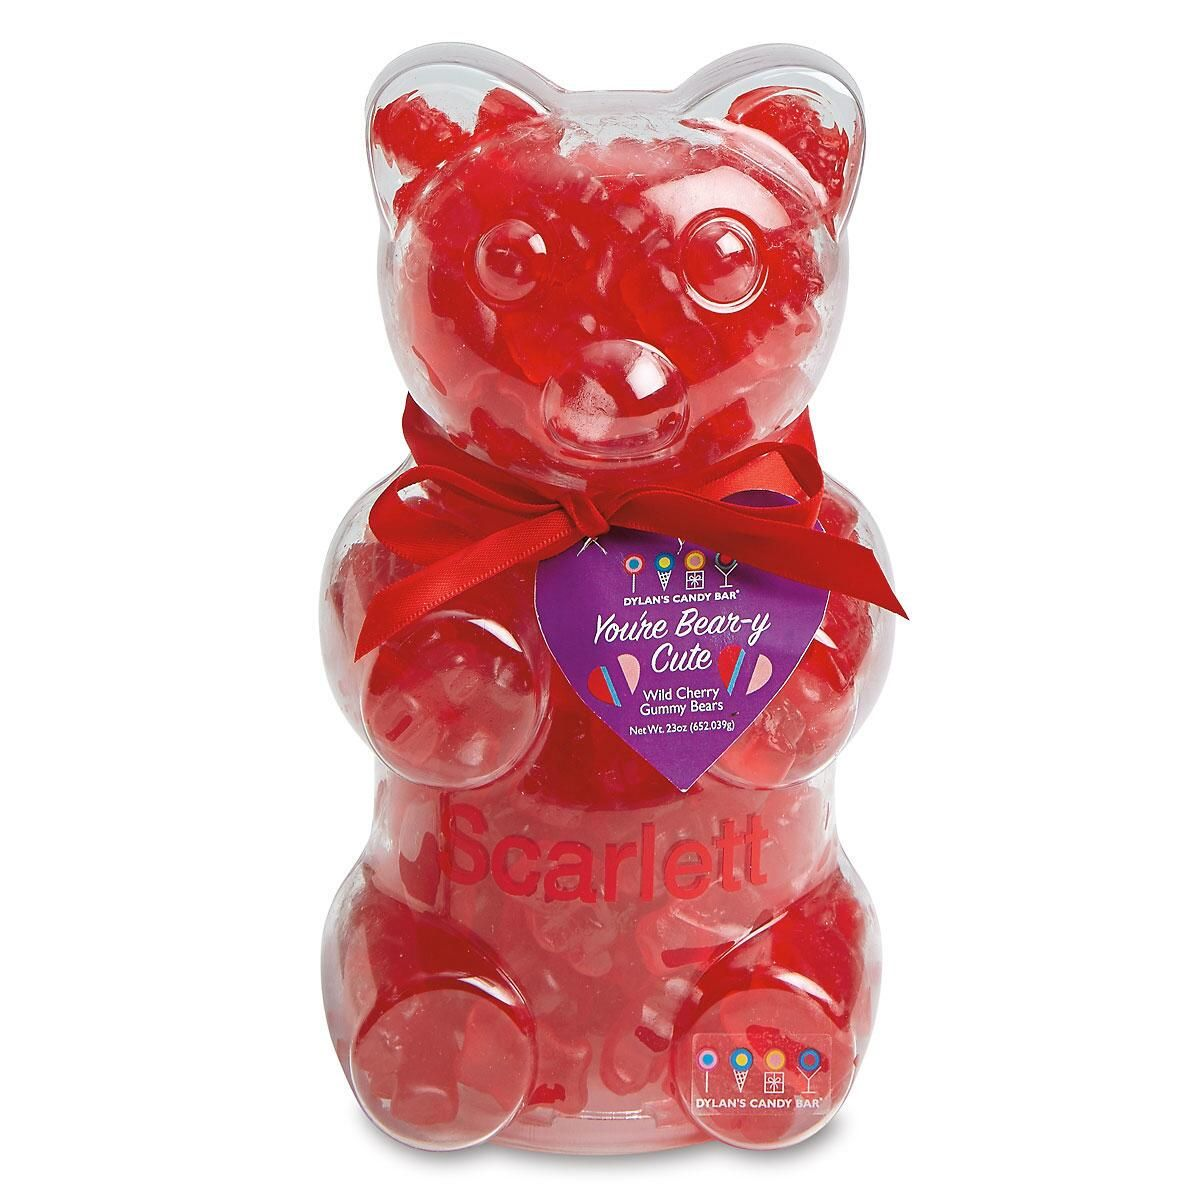 Personalized You're Bear-y Cute Gummy Bear Fillables by Dylan's Candy Bar